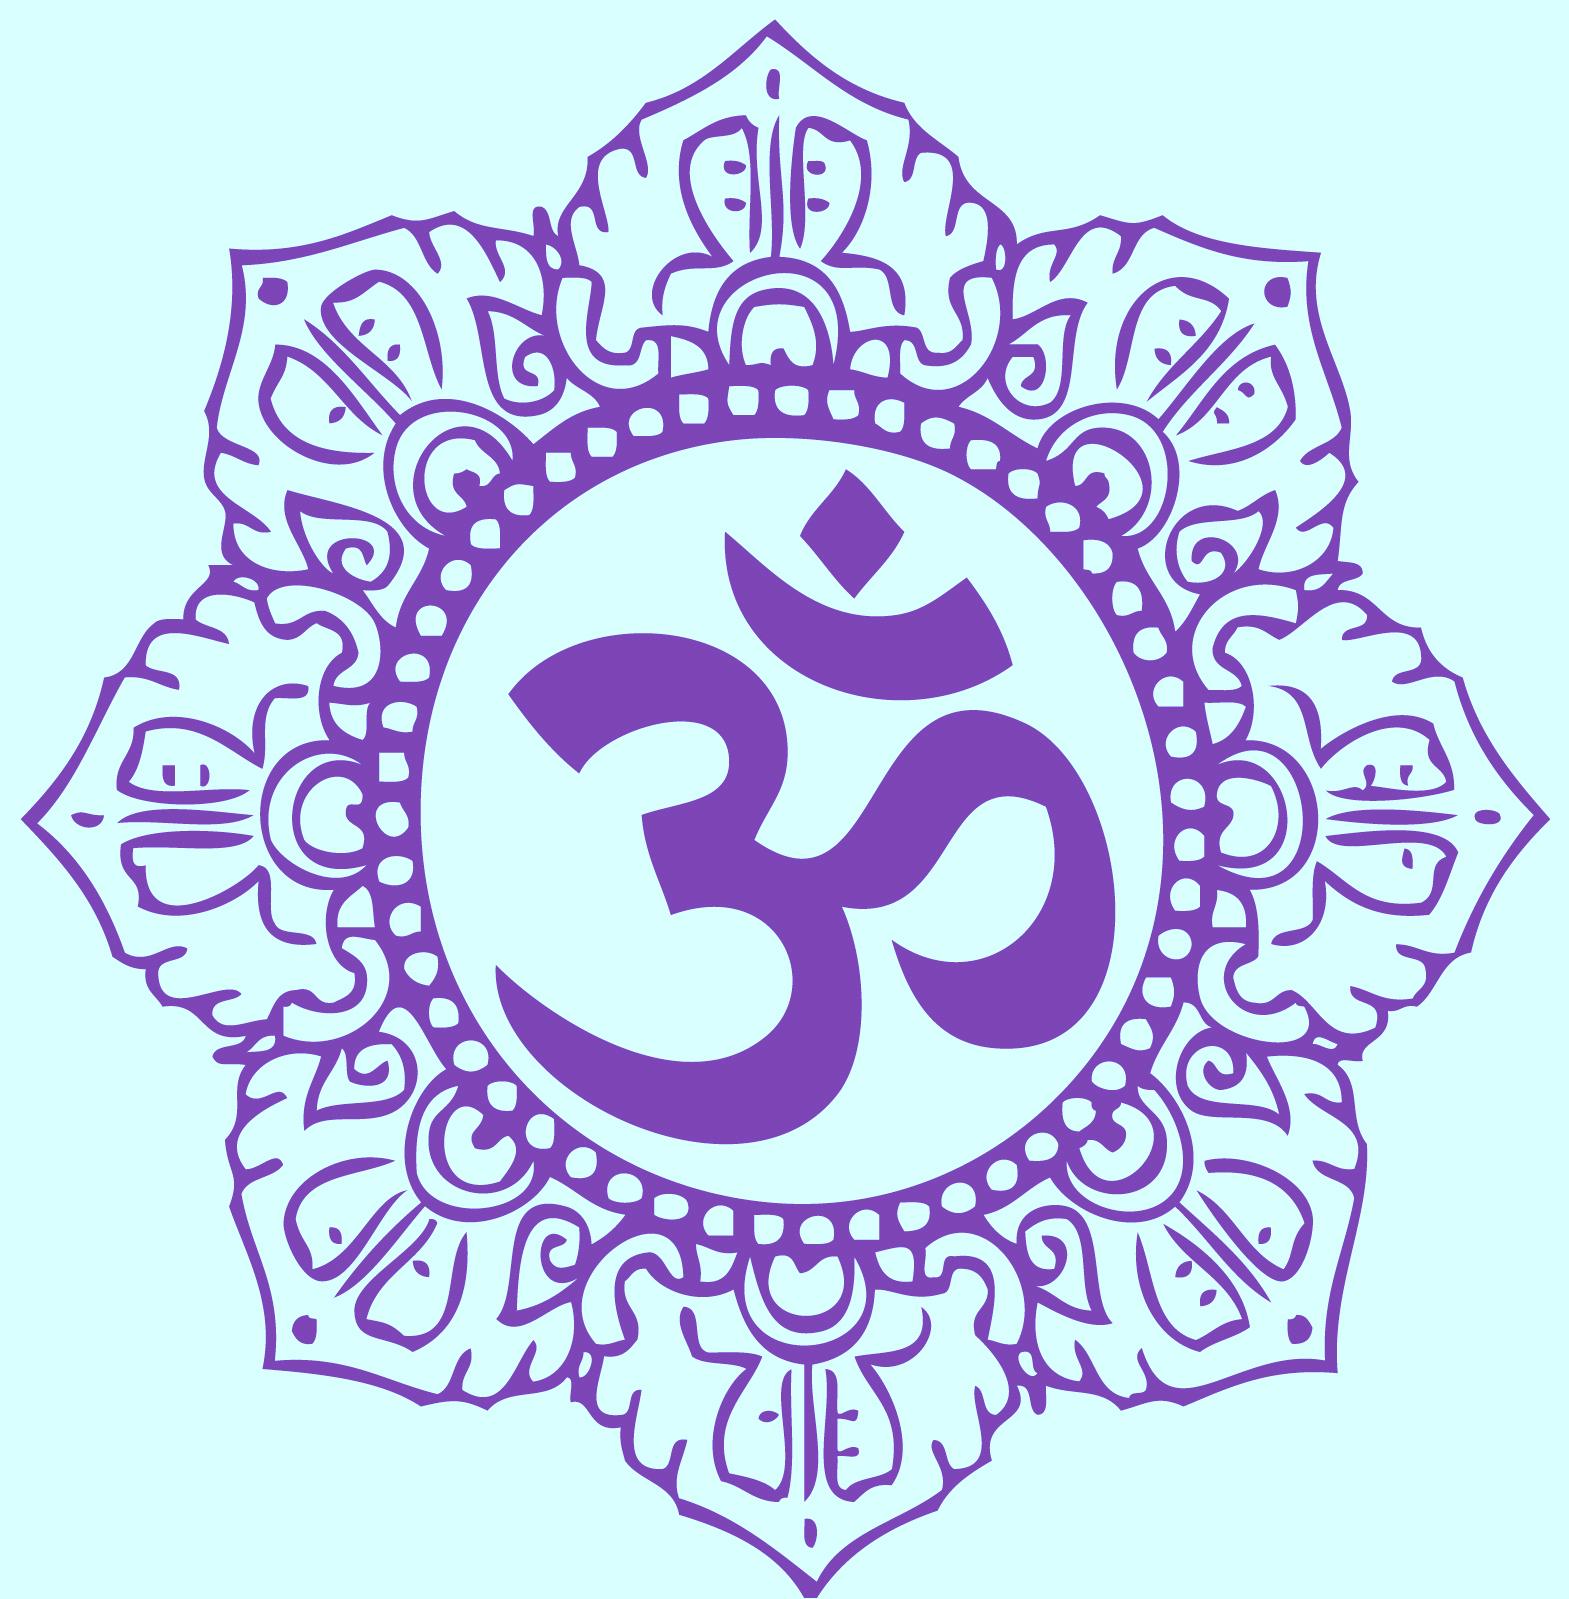 Concept of Divisional Charts in Vedic Astrology